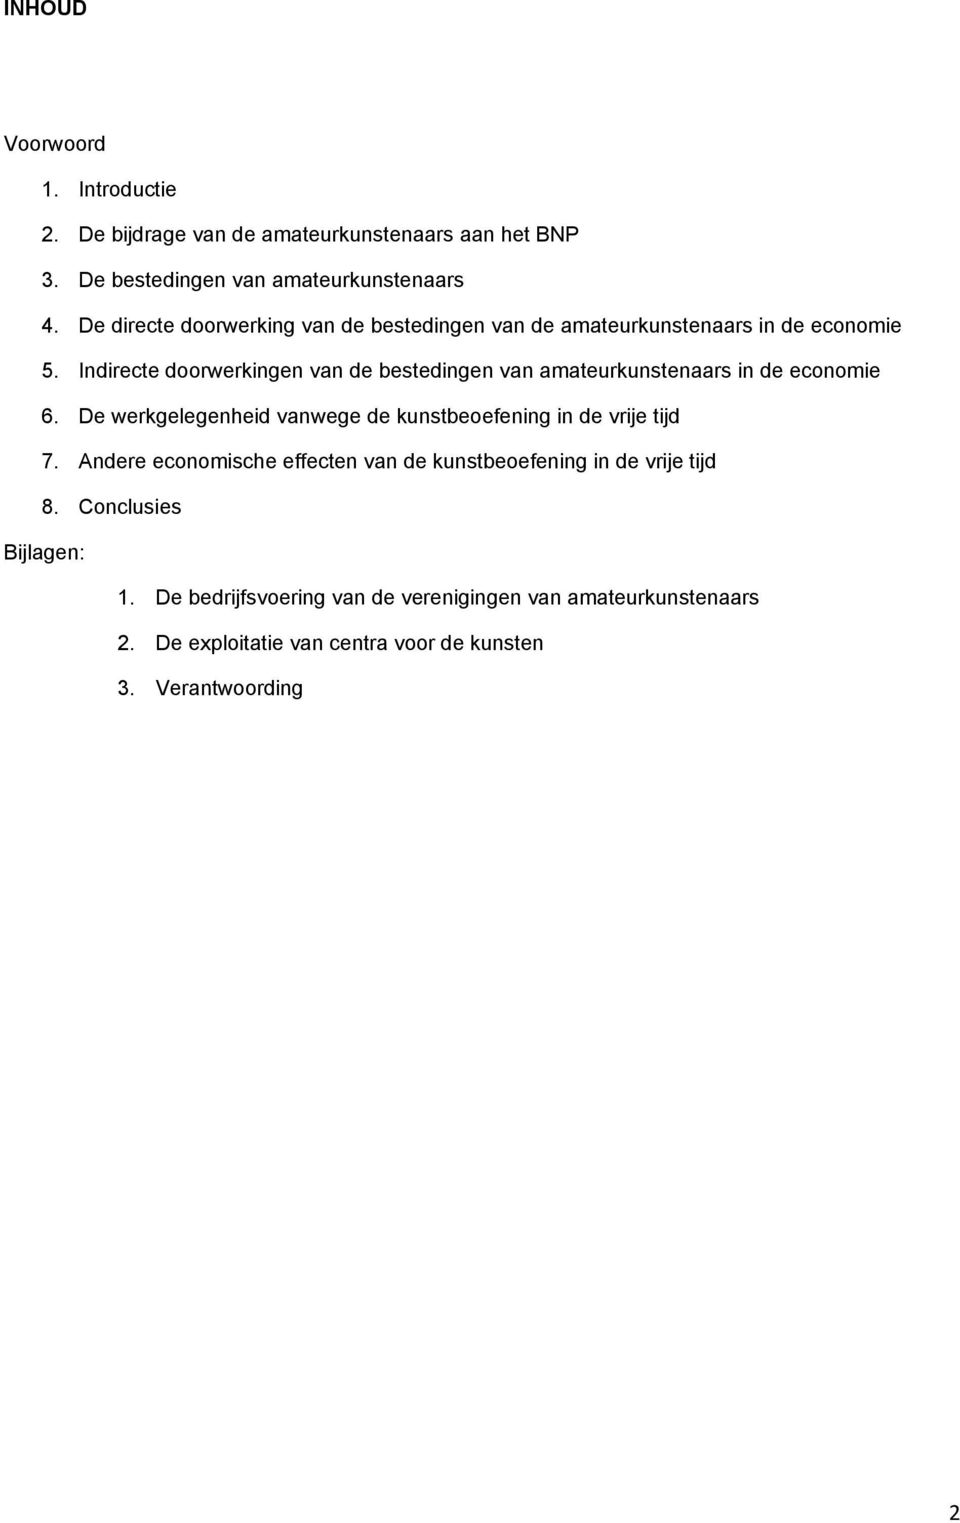 Indirecte doorwerkingen van de bestedingen van amateurkunstenaars in de economie 6.